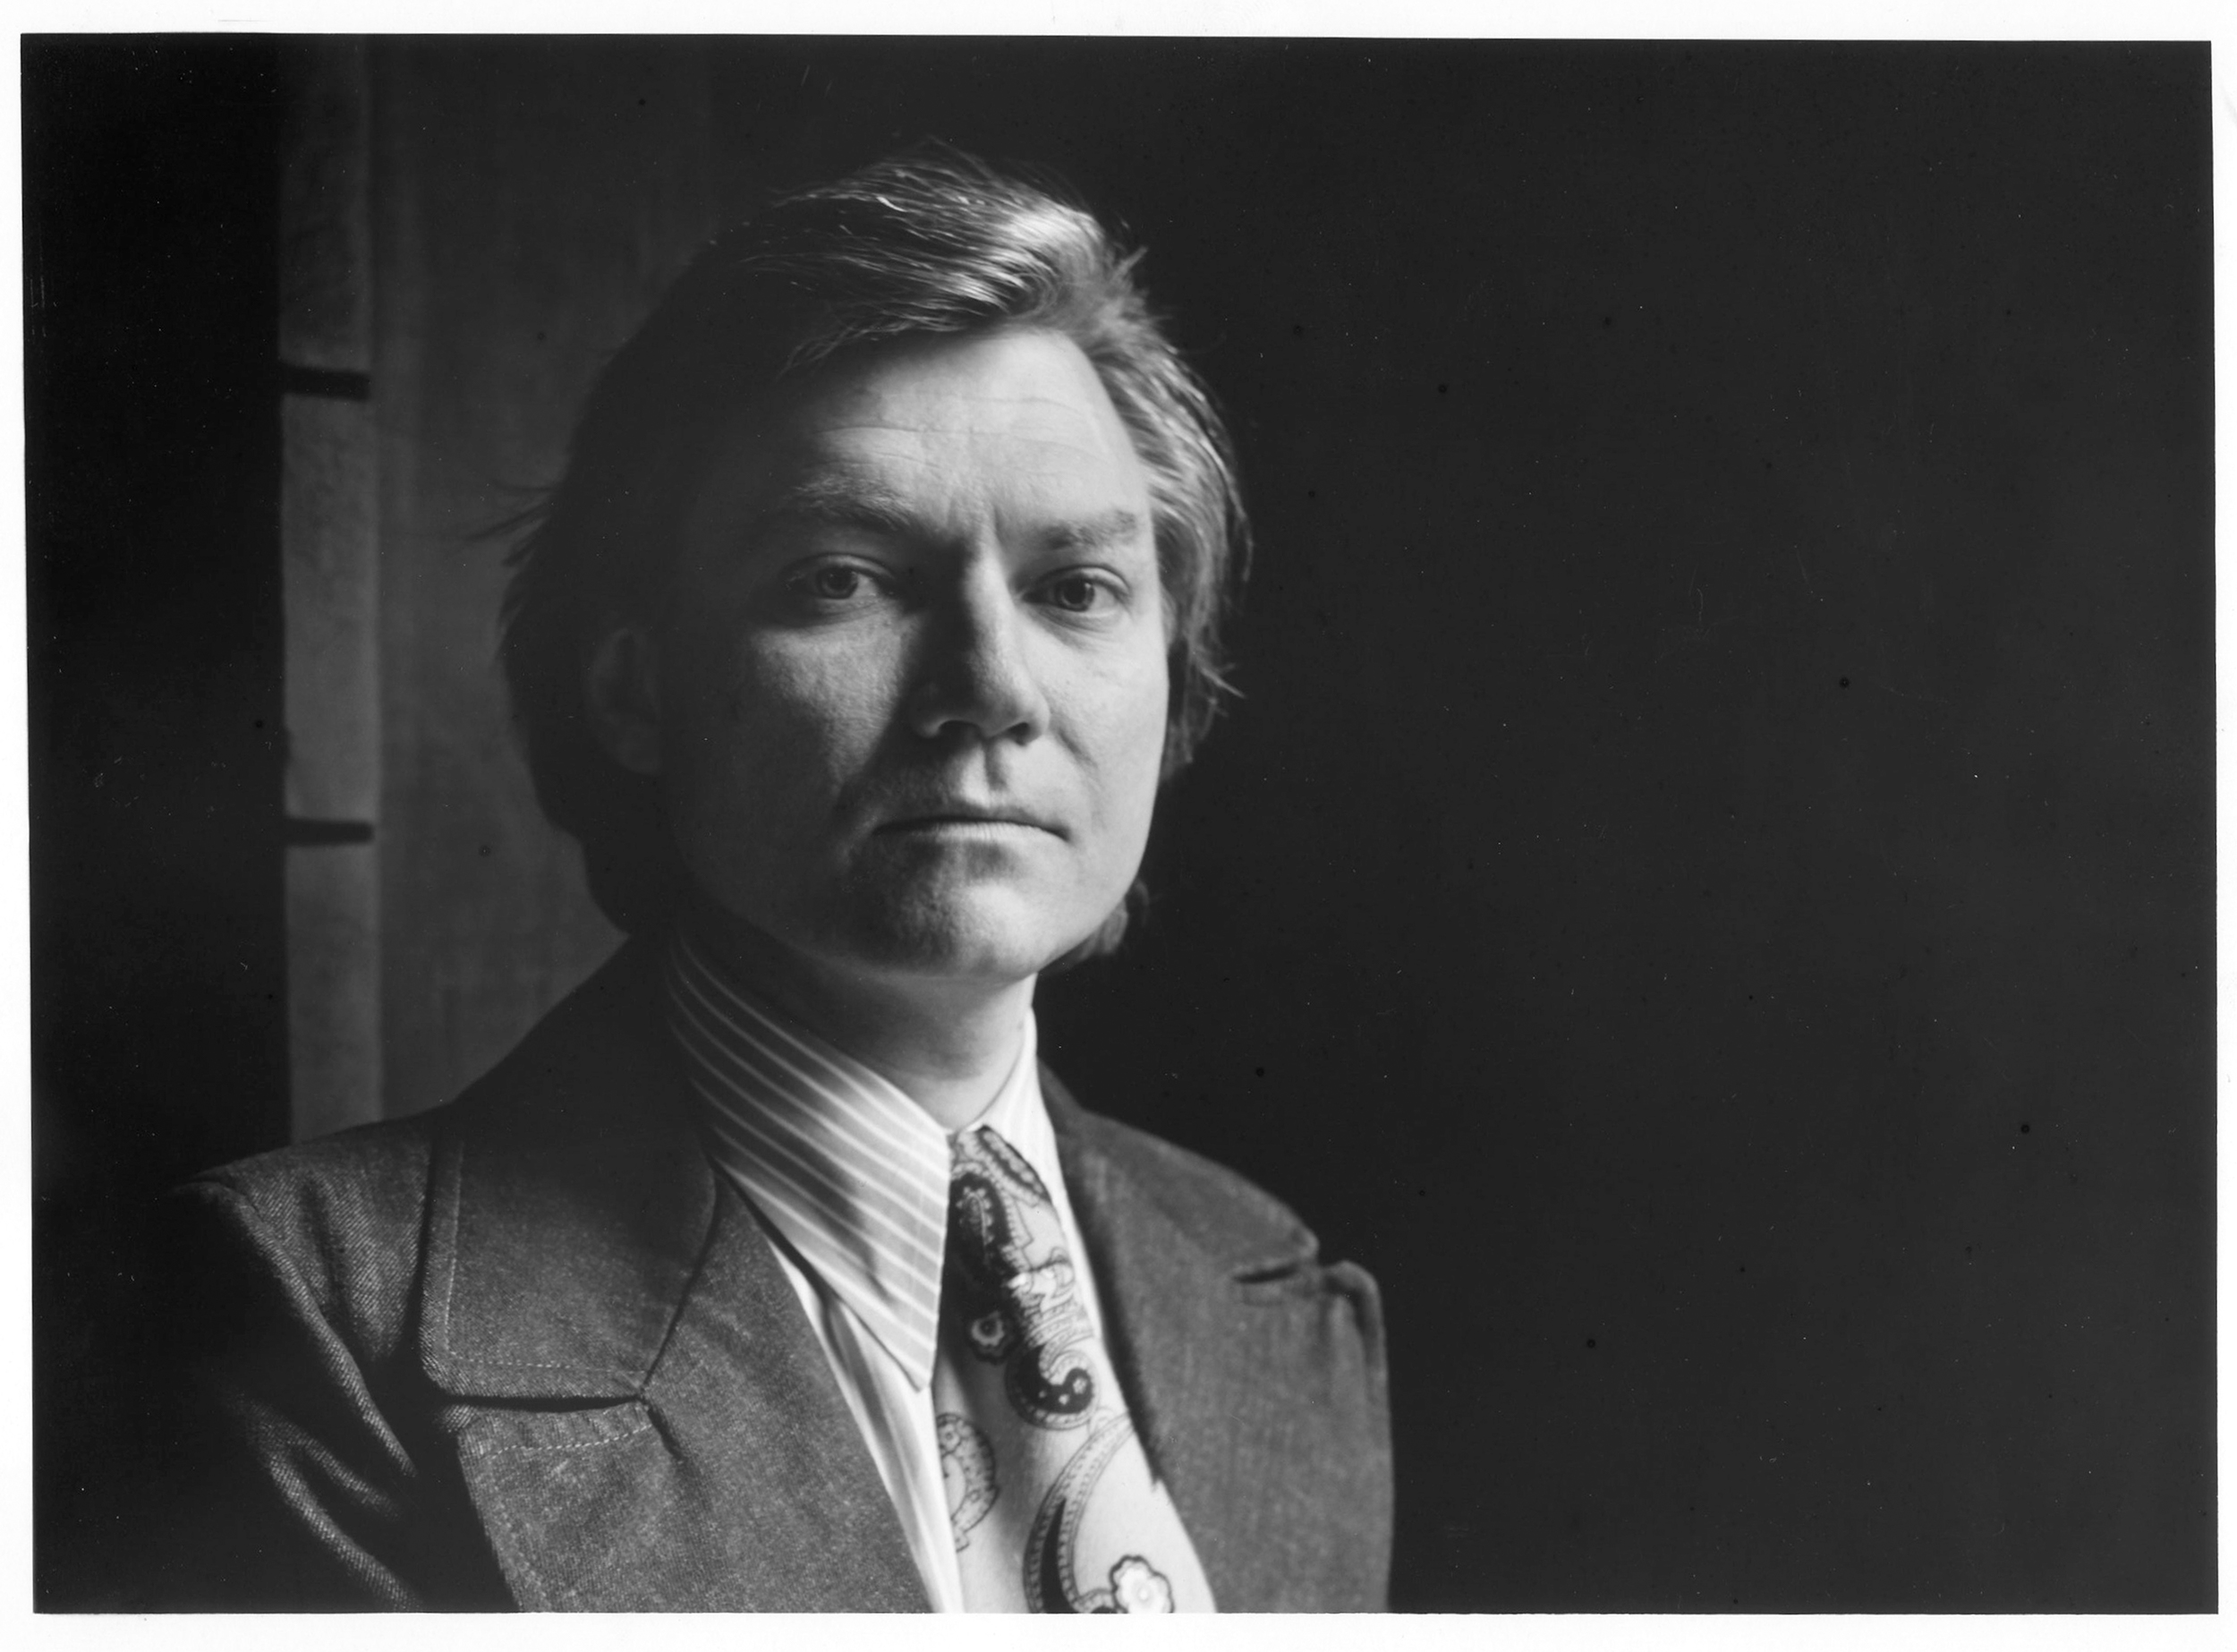 RISD's official portrait of John Udvardy when he was hired and appointed the new chairman of the Freshman Foundation Division and Director of the Summer Transfer Program. June 1973.